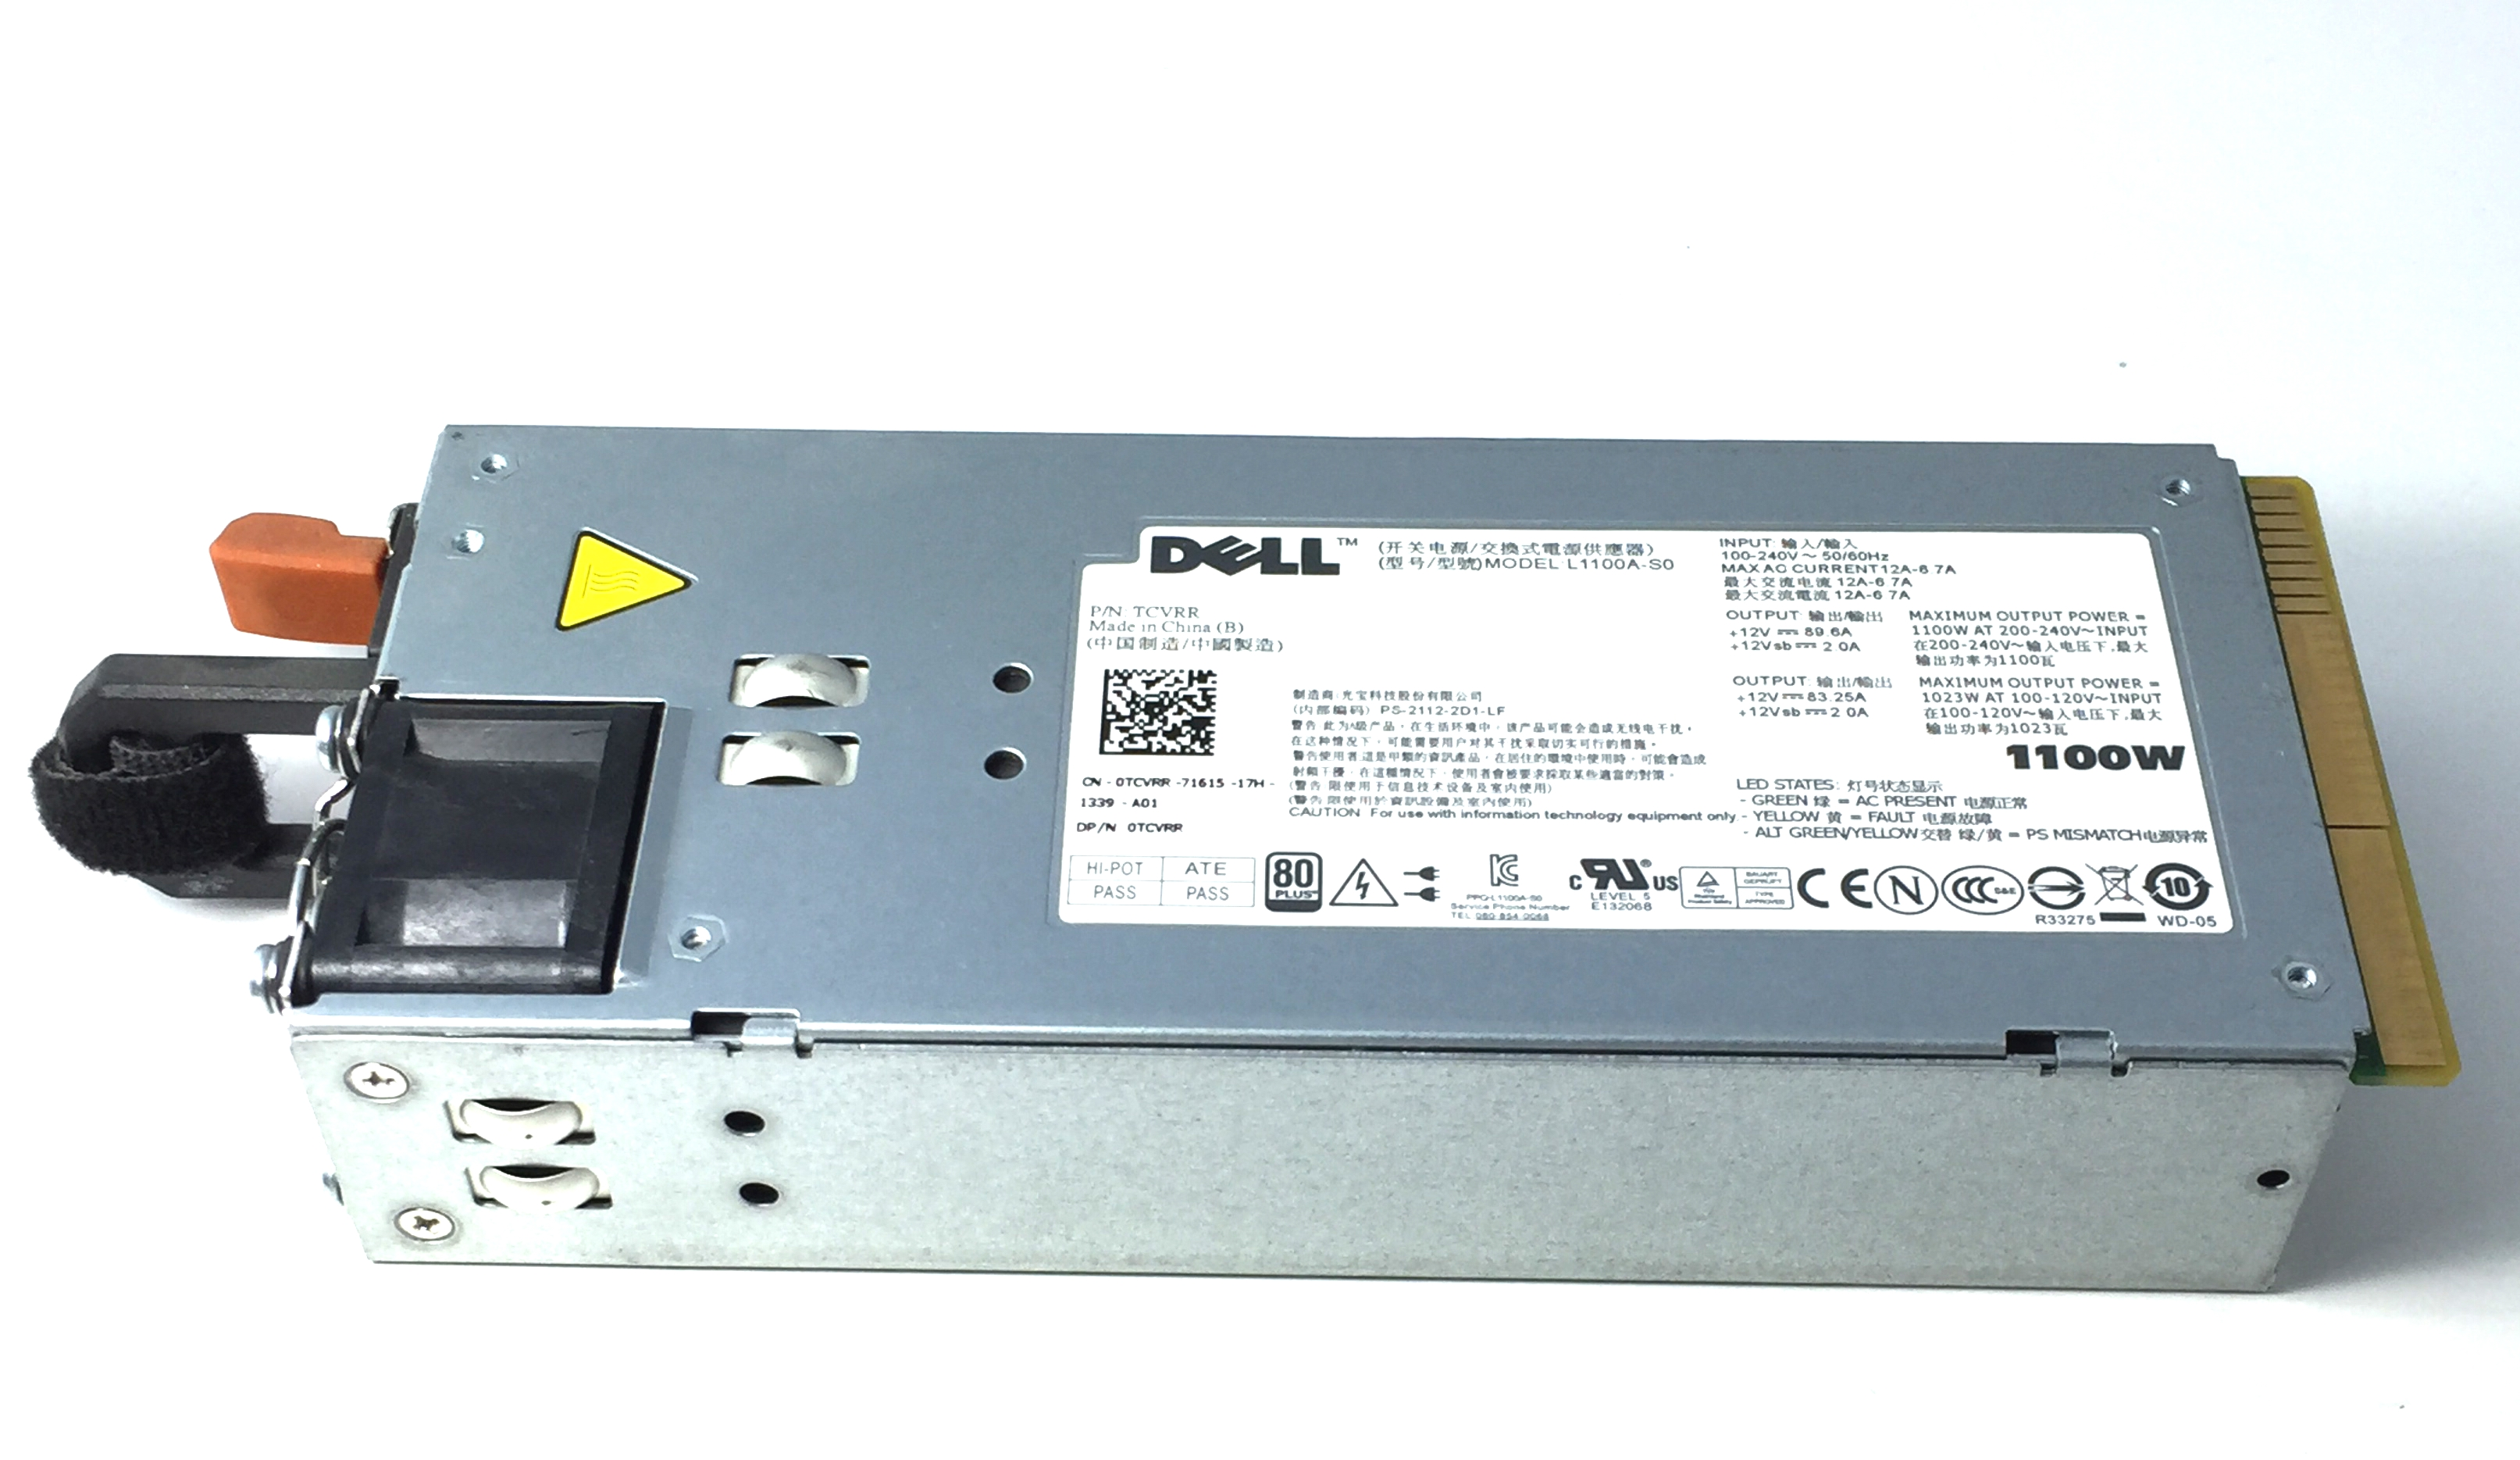 TCVRR DELL POWEREDGE R510 R810 R910 1100W POWER SUPPLY (TCVRR)